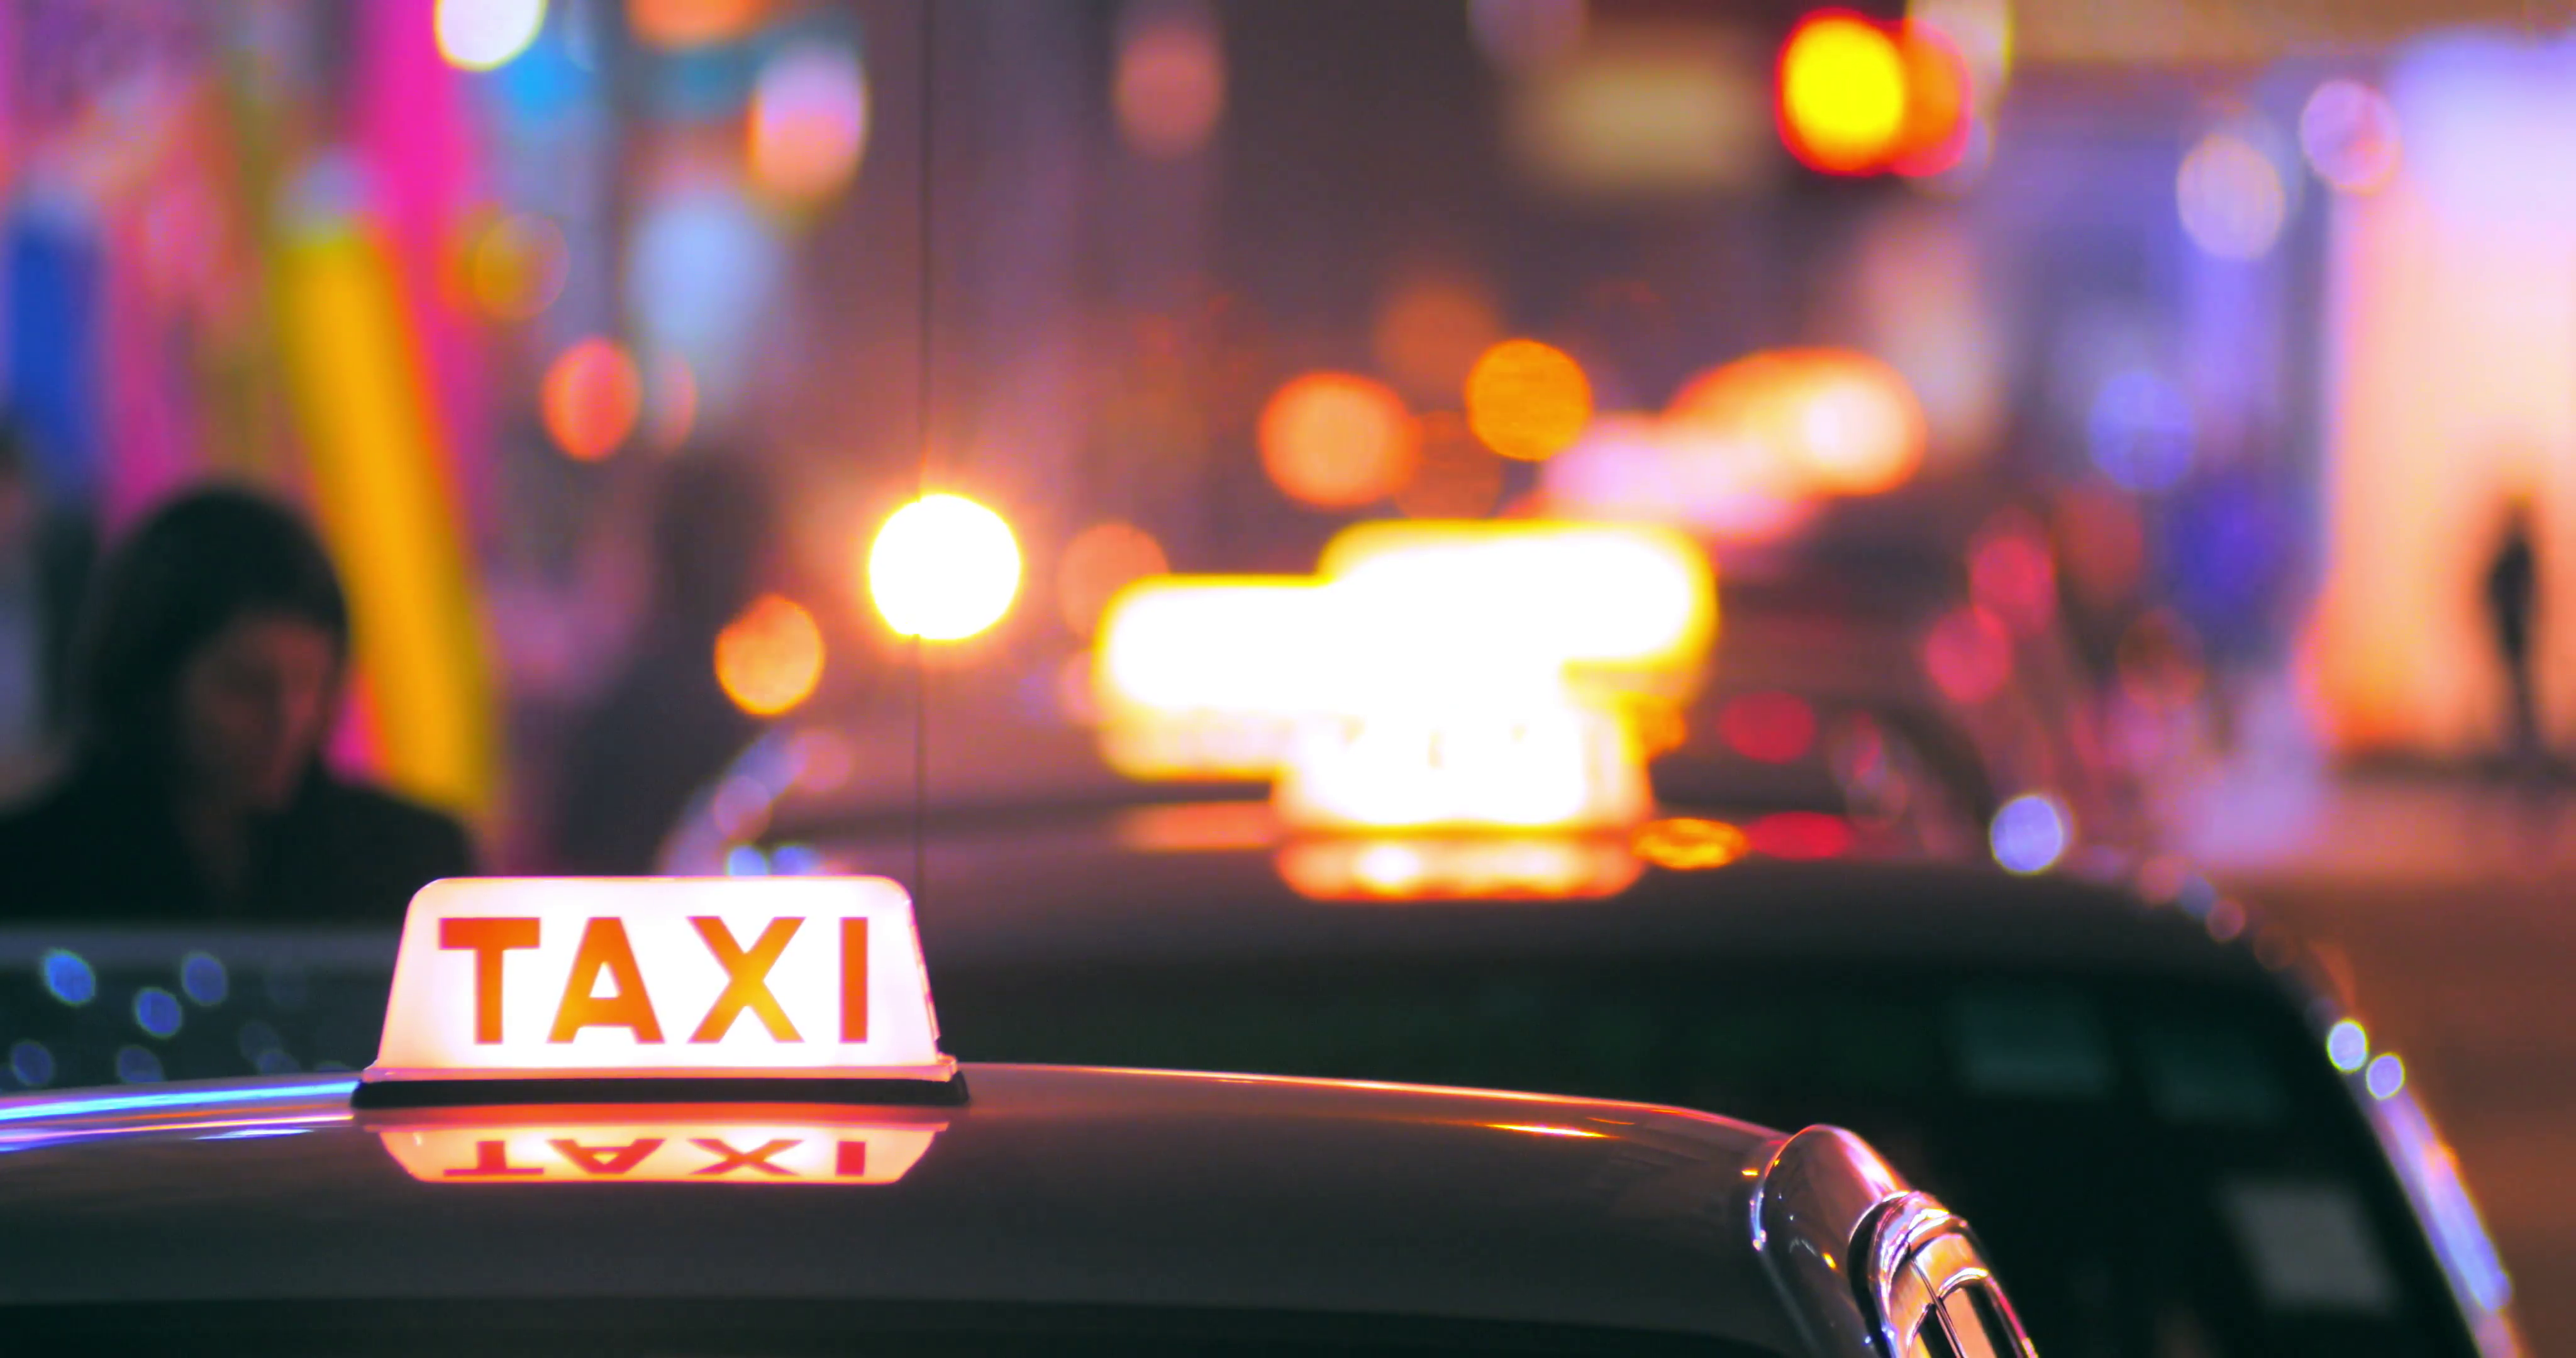 Blurred background of passenger entering inside taxi cab Taxi 4096x2160